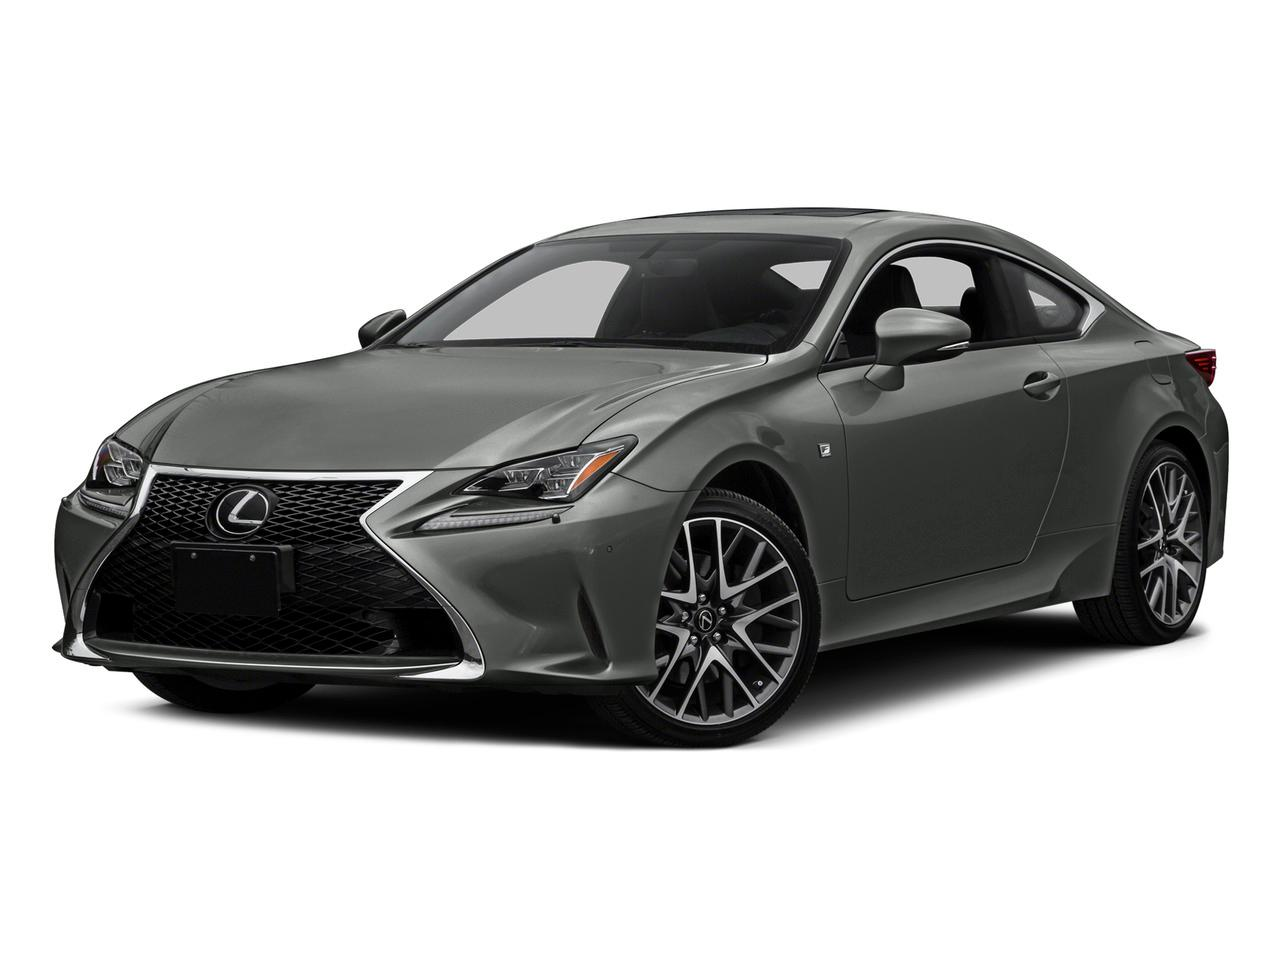 2015 Lexus RC 350 Vehicle Photo in Portland, OR 97225